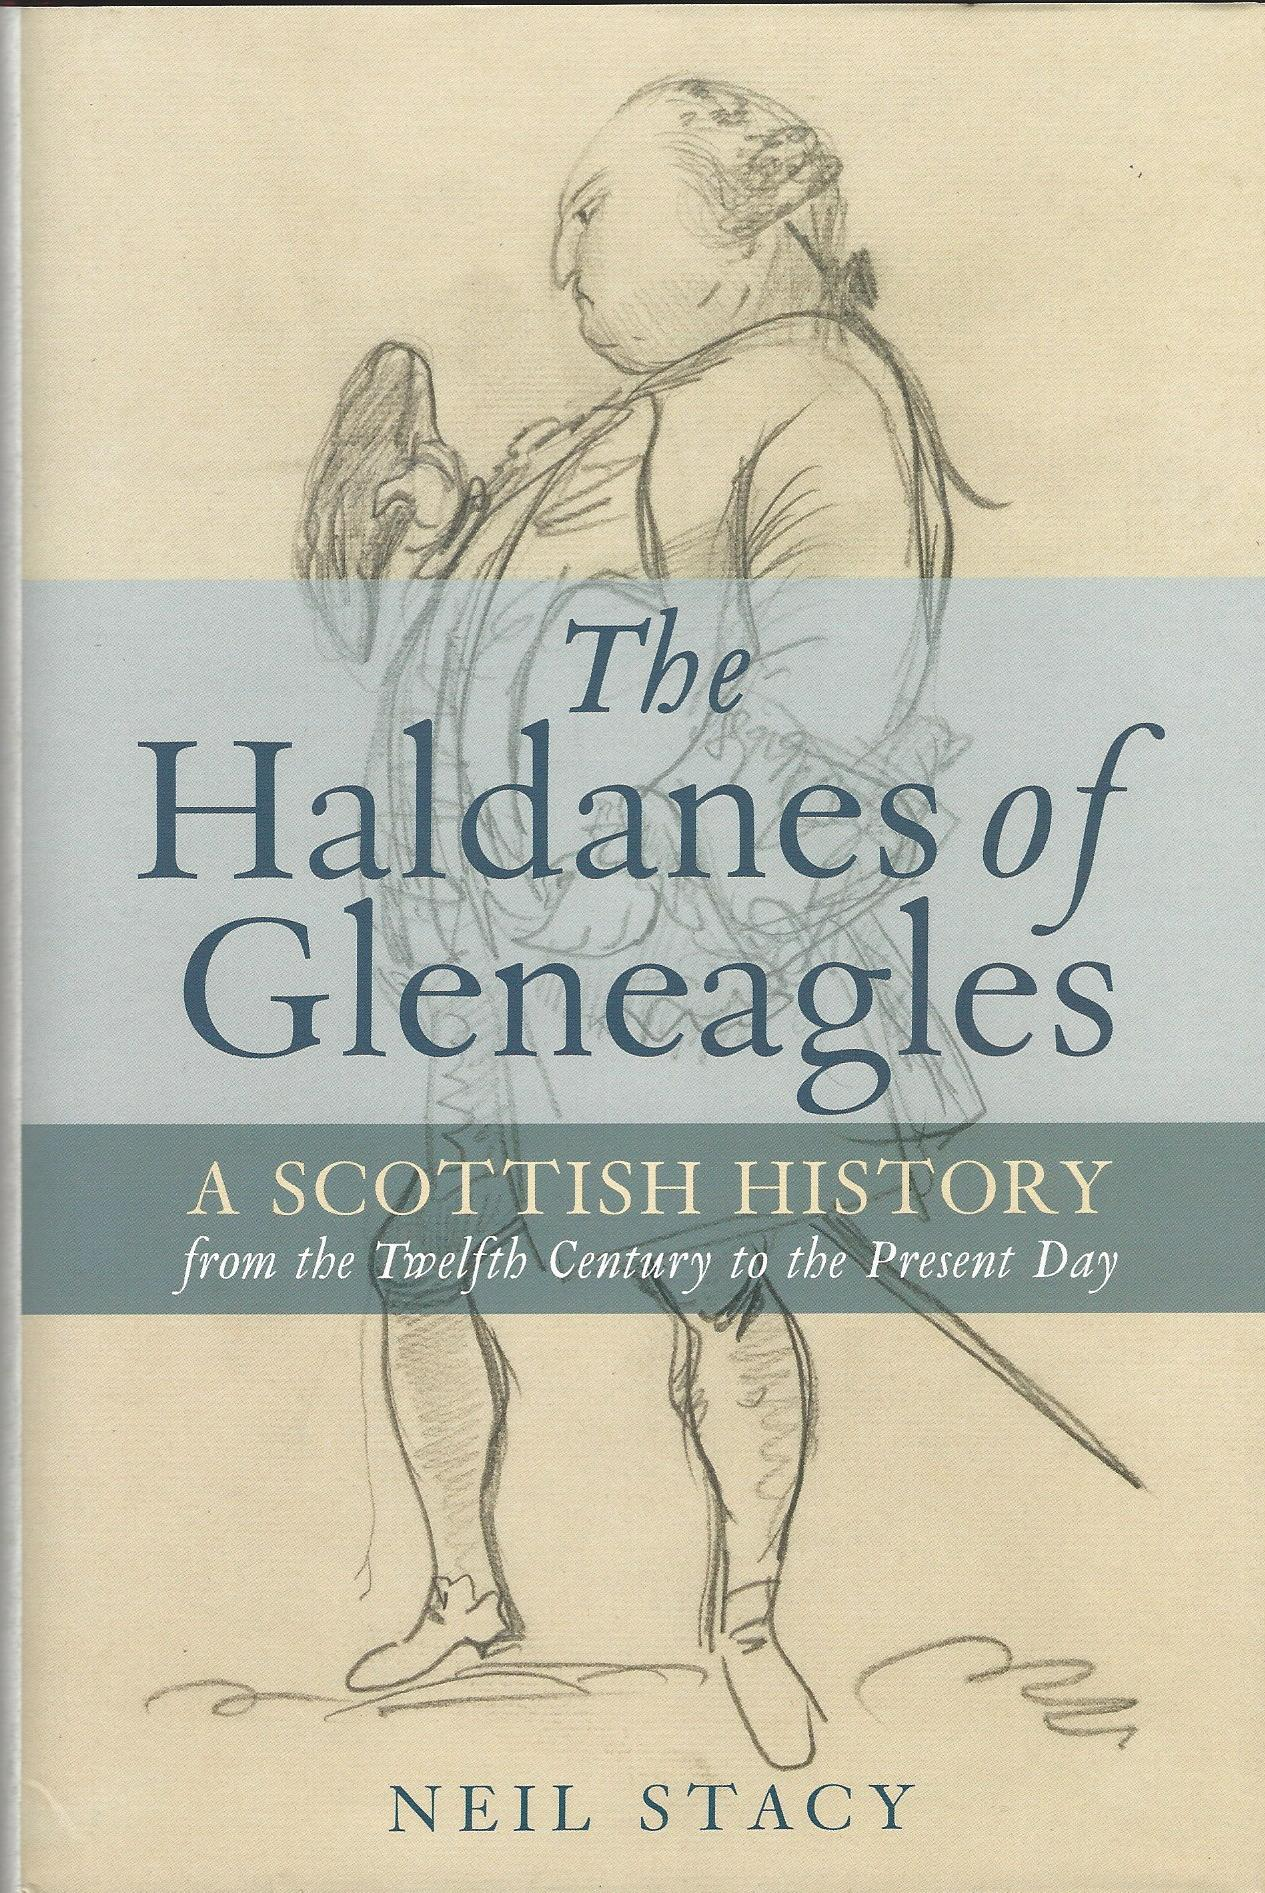 Image for The Haldanes of Gleneagles: A Scottish History from the Twelfth Century to the Present Day